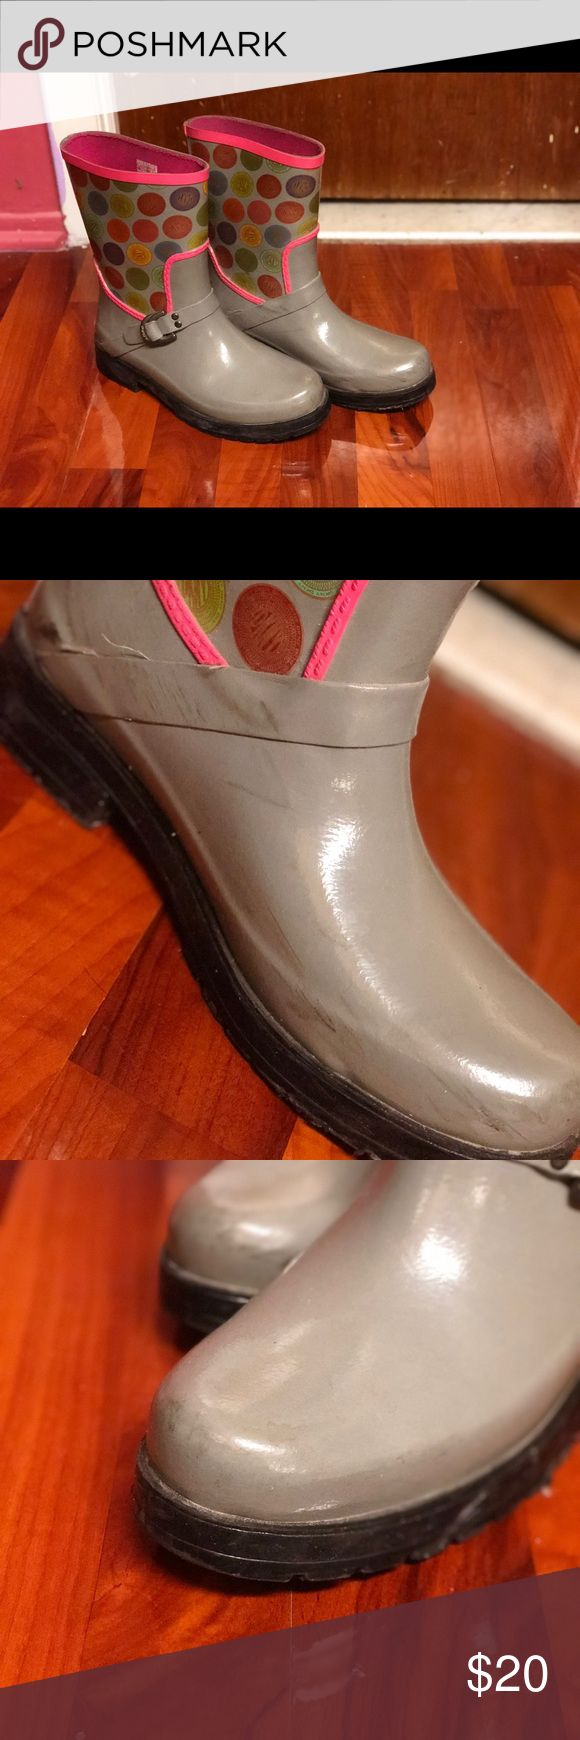 DKNY Rain boots Cute DNKY gray & pink rain boots. These boots have been worn a few times but are EXTREMELY durable & excellent quality. Your feet don't get wet at all in them. I've never worn them in the snow so I won't be able to shed light on that aspect. They have a few scuffs from battling the nitty gritty sheets of NYC, but nothing major. These are listed as a size 8 boot but I wear an 8.5 and they fit perfectly (which means they run big) Dkny Shoes Winter & Rain Boots